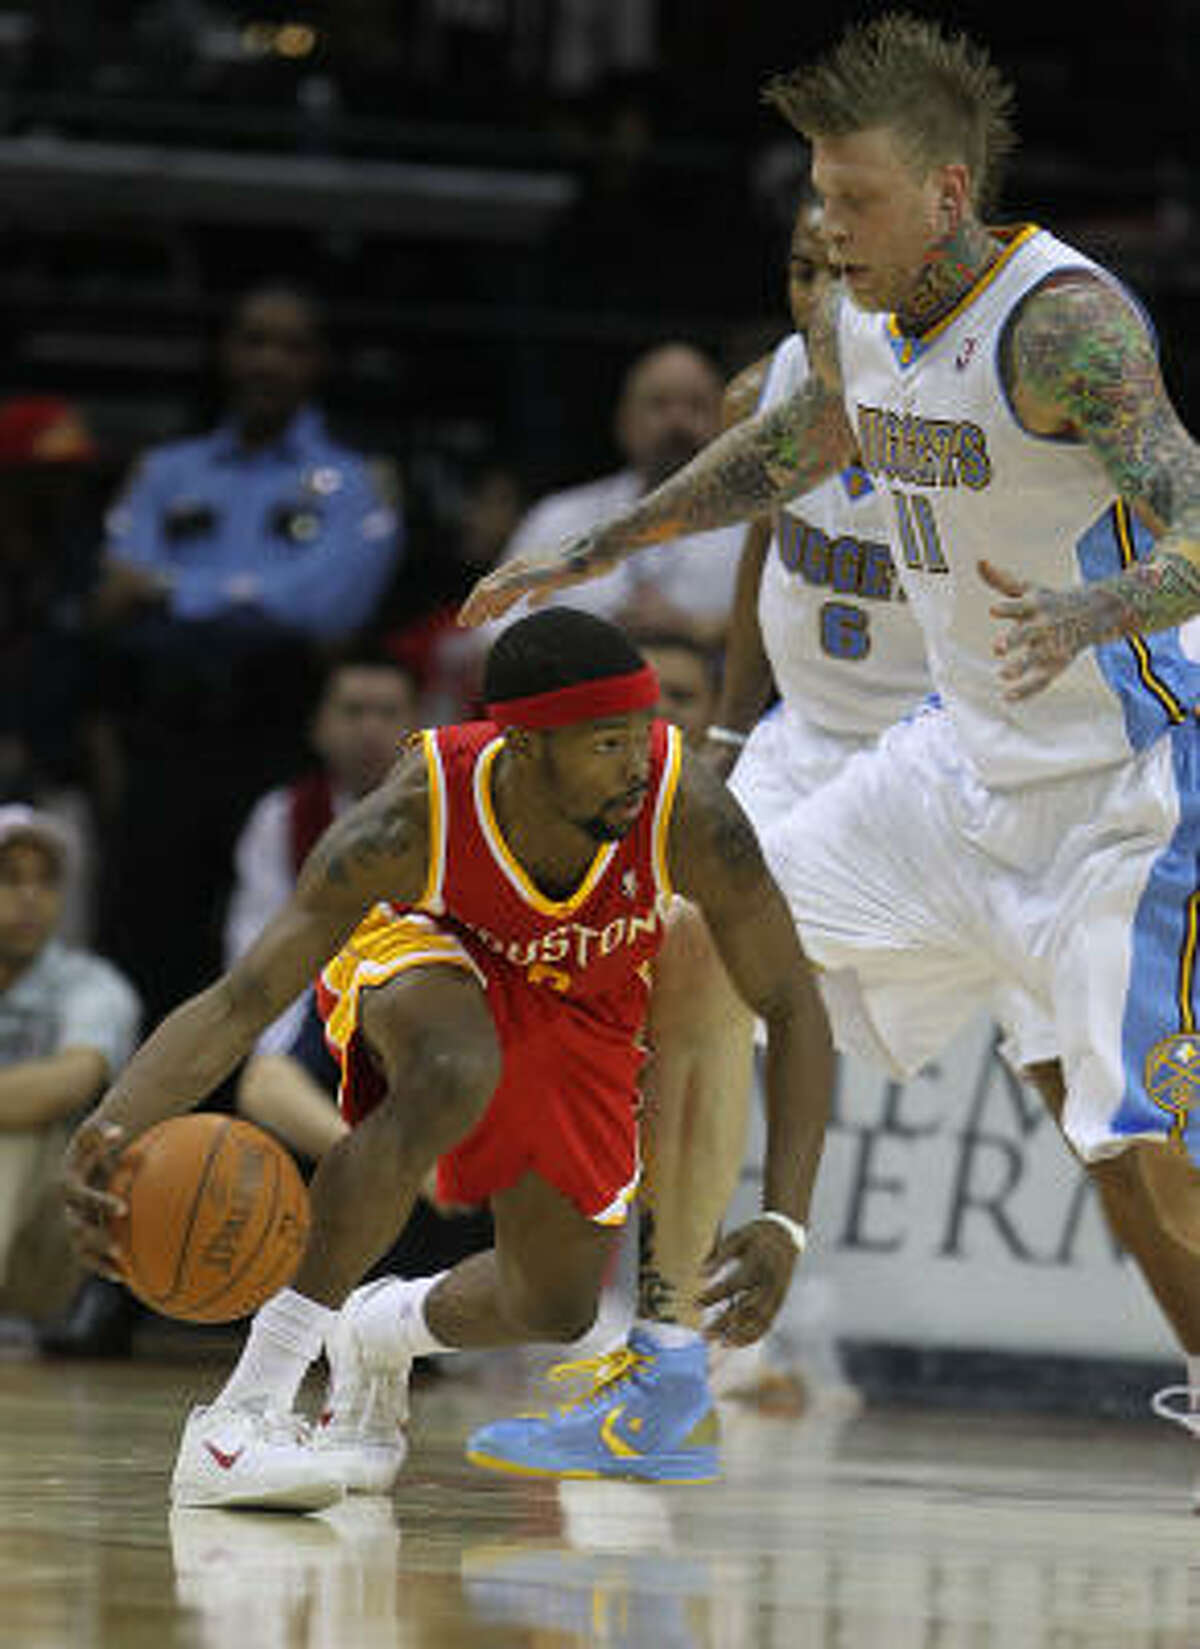 Rockets point guard Aaron Brooks, left, tries to dribble around Nuggets forward Chris Andersen.